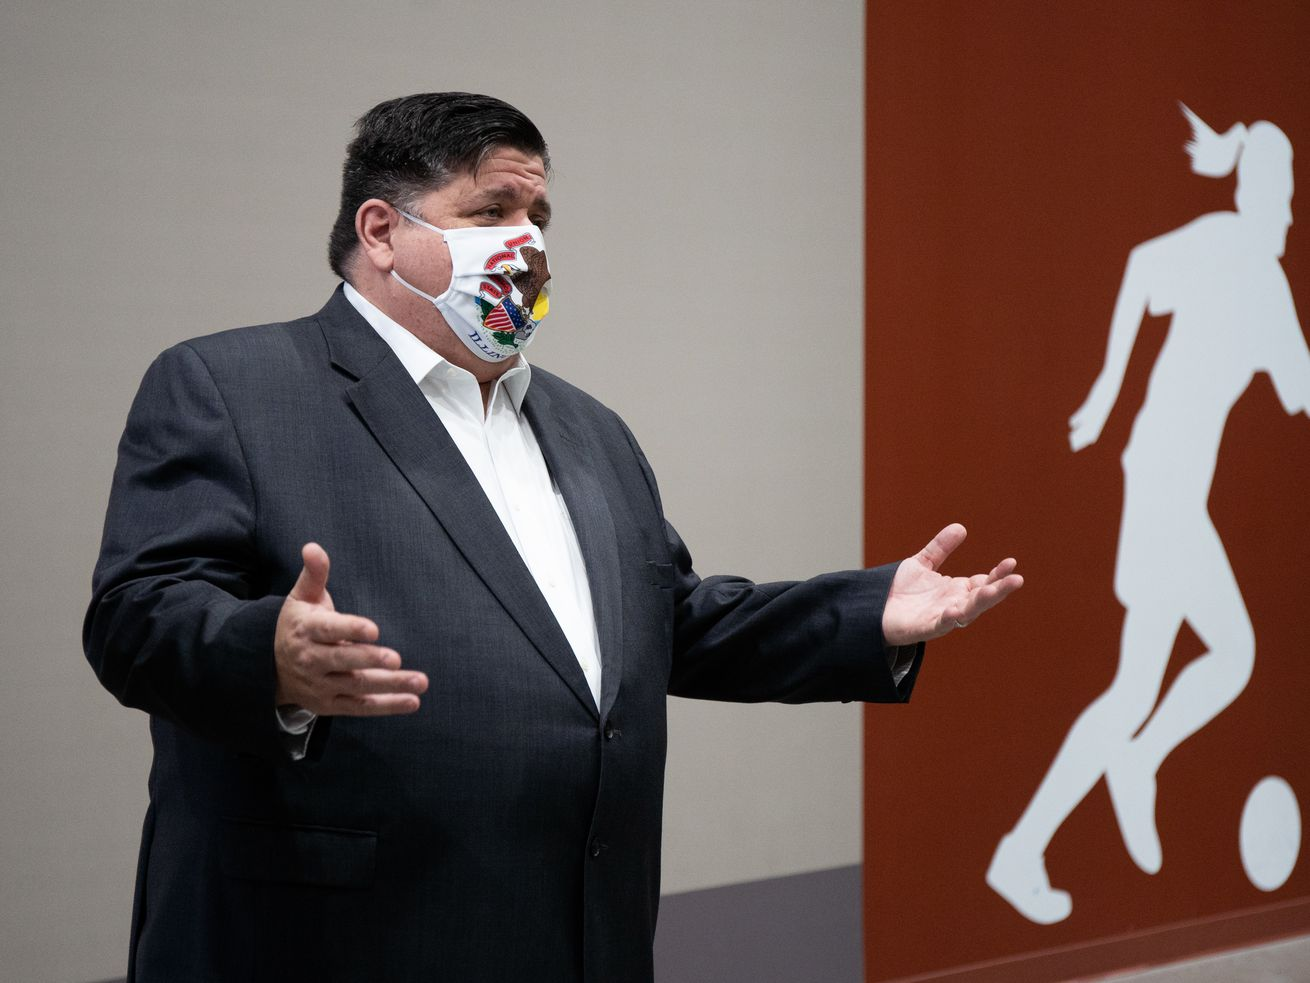 Gov. J.B. Pritzker speaks during a tour of the Pullman Community Center, which received a Business Interruption Grant, in the Pullman neighborhood on Wednesday.